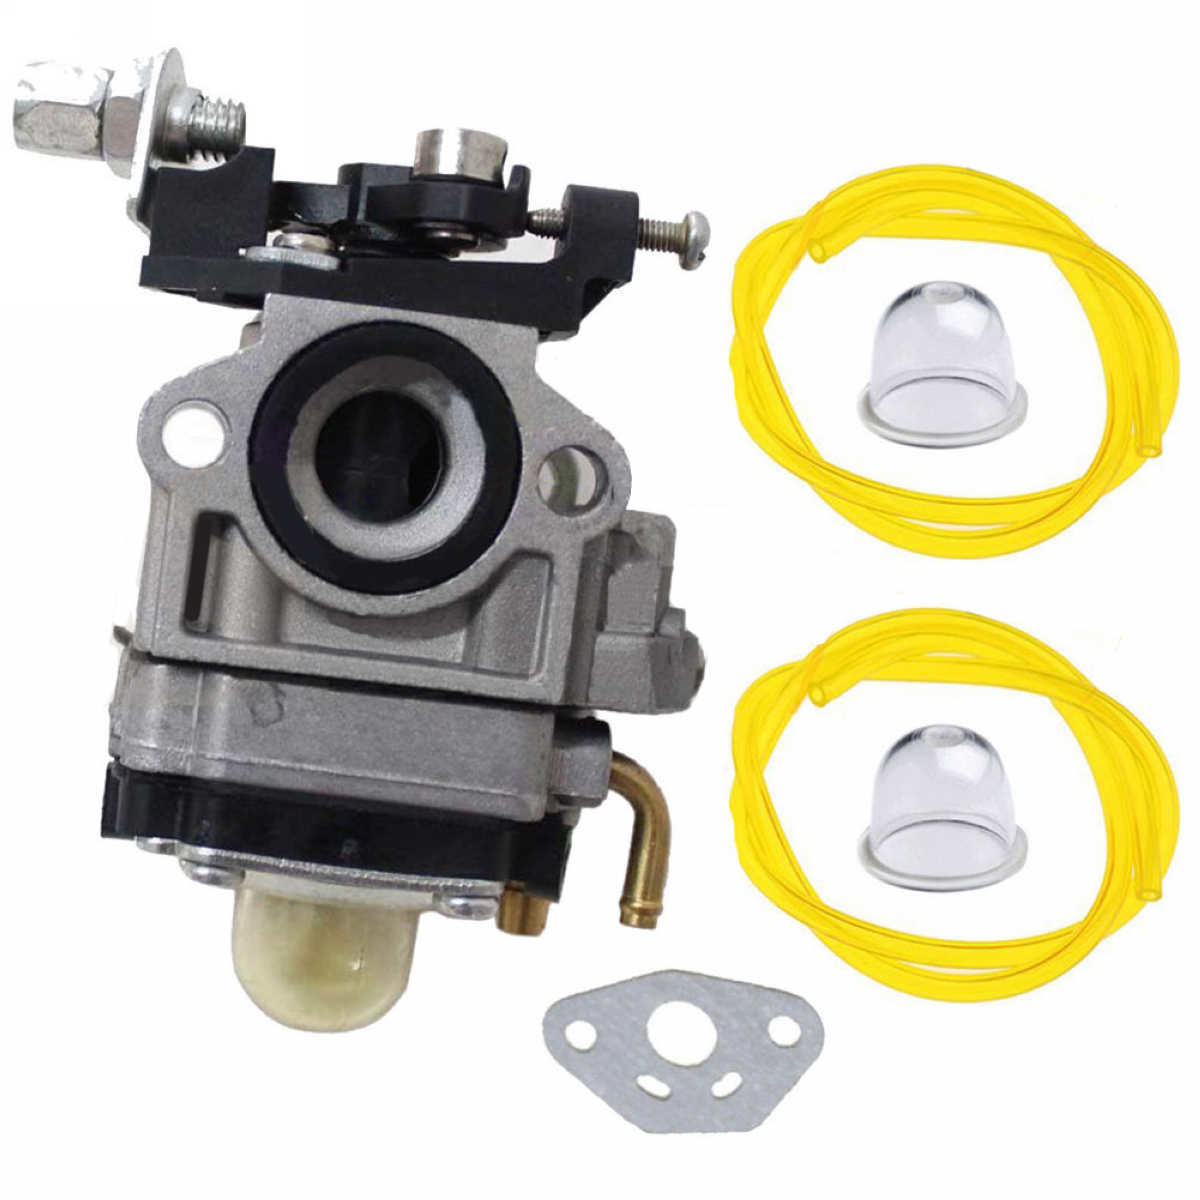 10mm Carburetor Carb For Universal Hedge Trimmer Chainsaw Strimmer Brush Cutter Parts